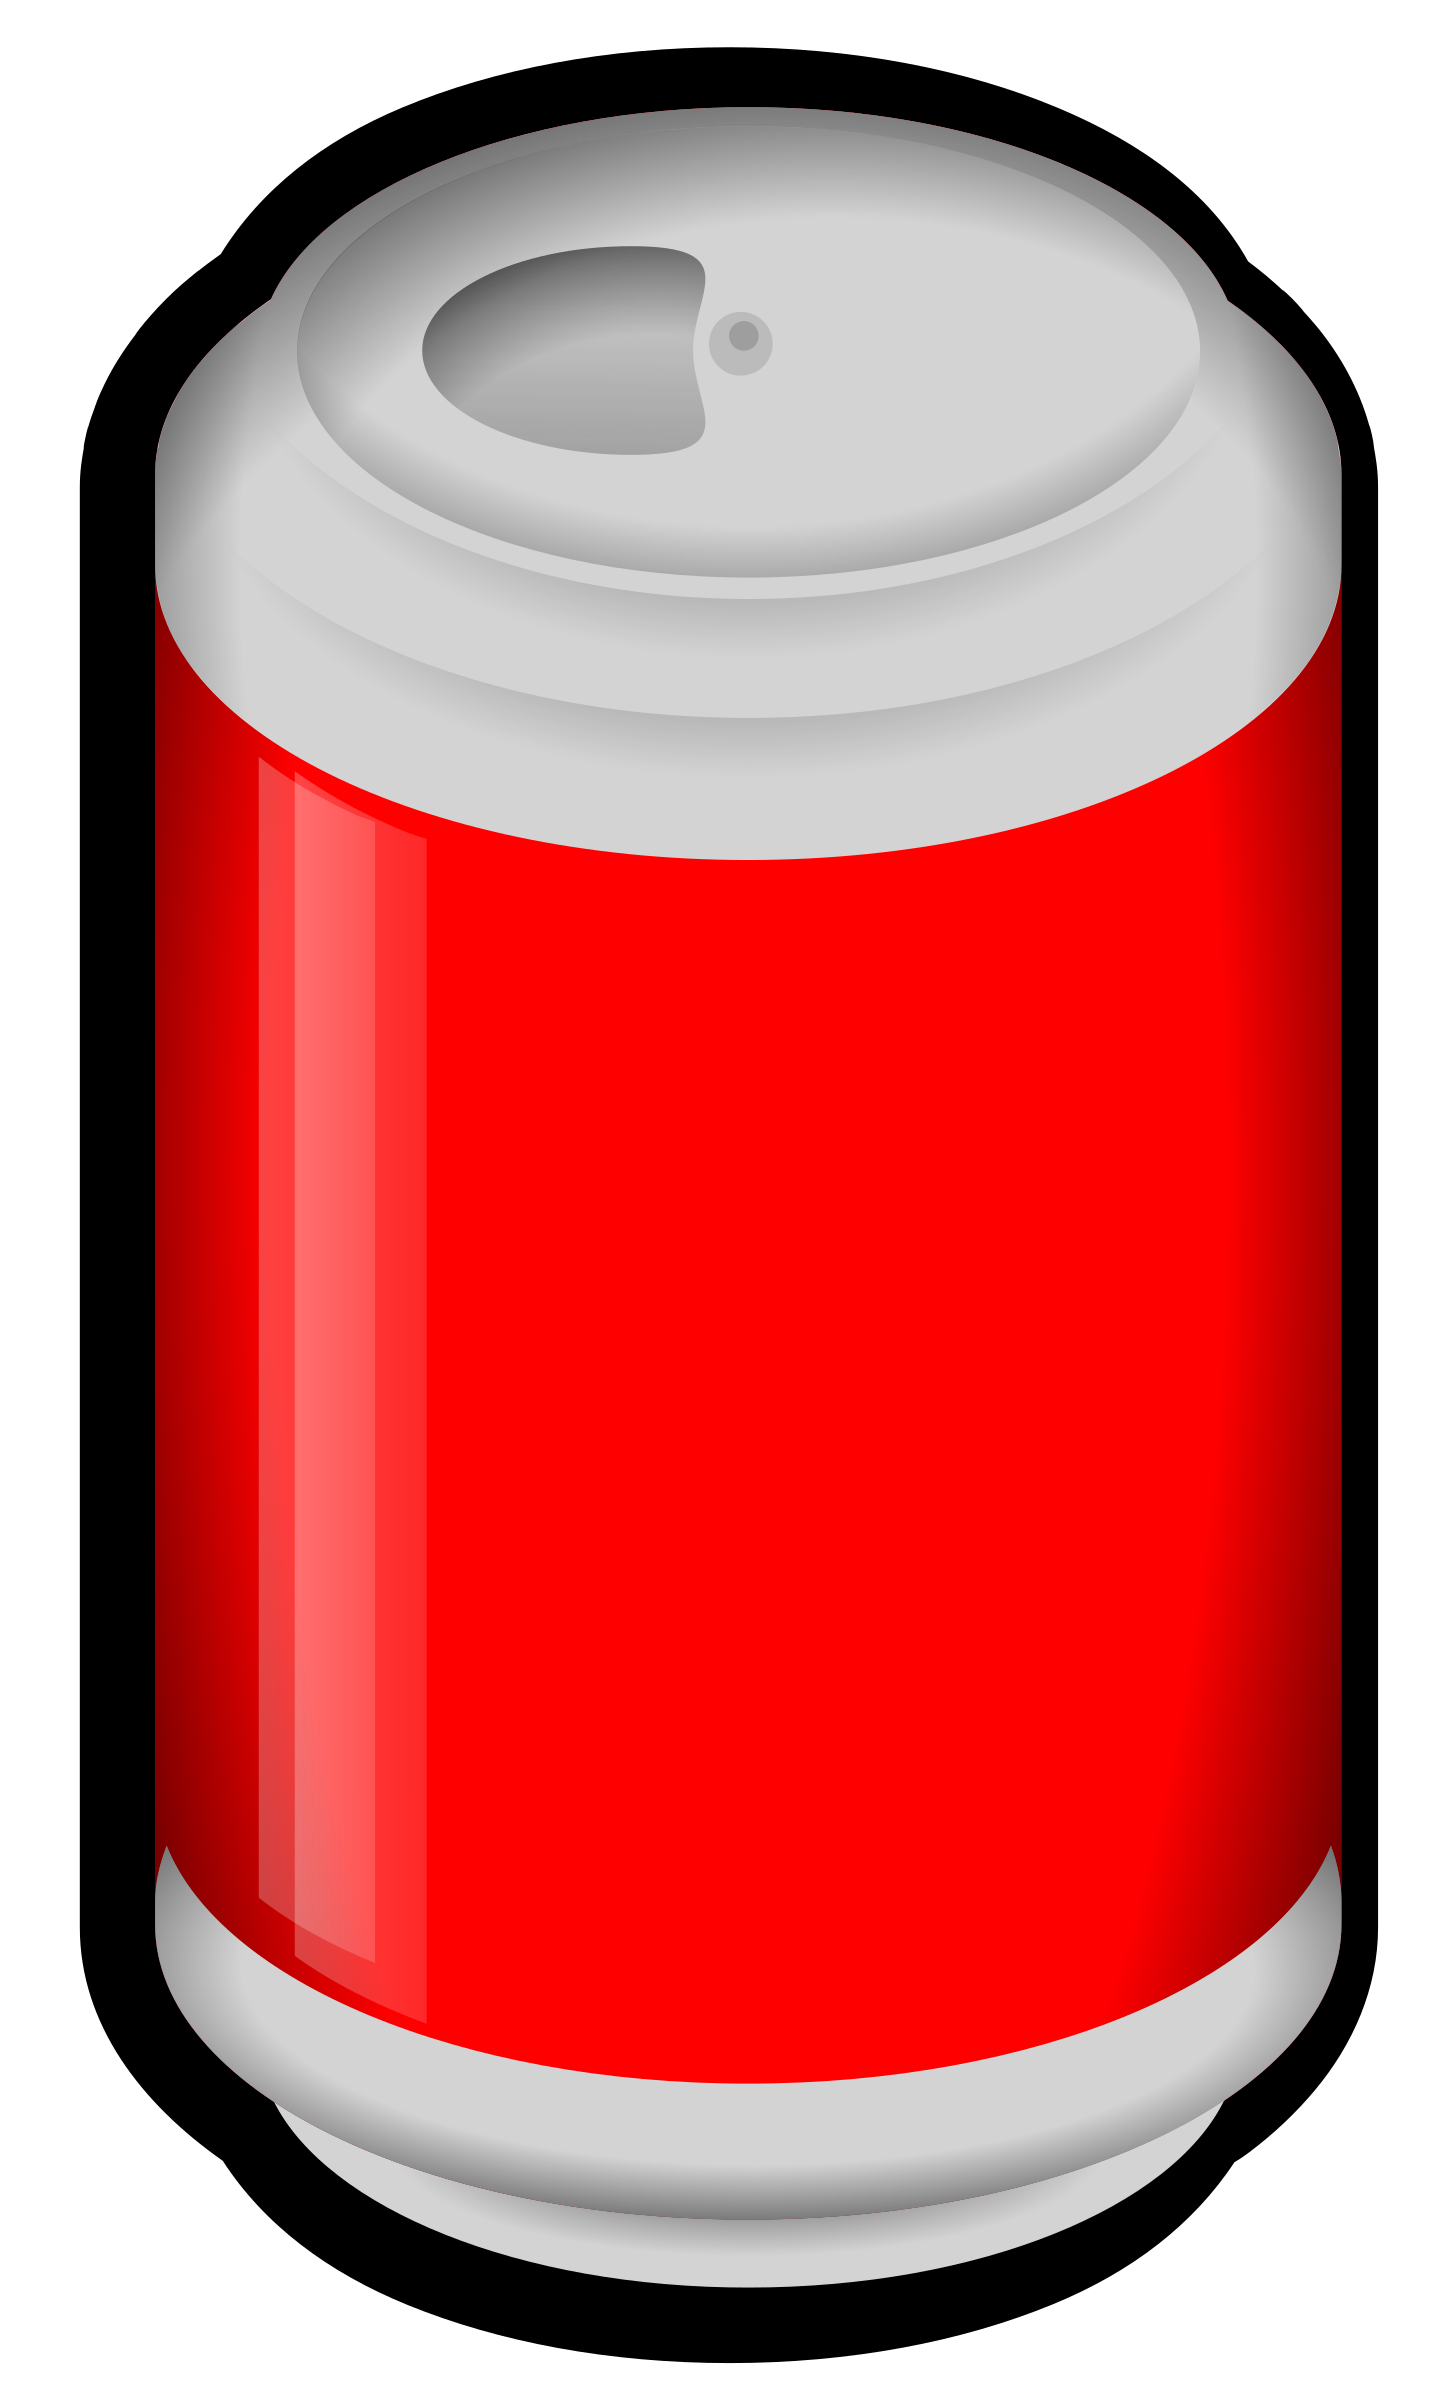 Drinks clipart soda. Cola big image png